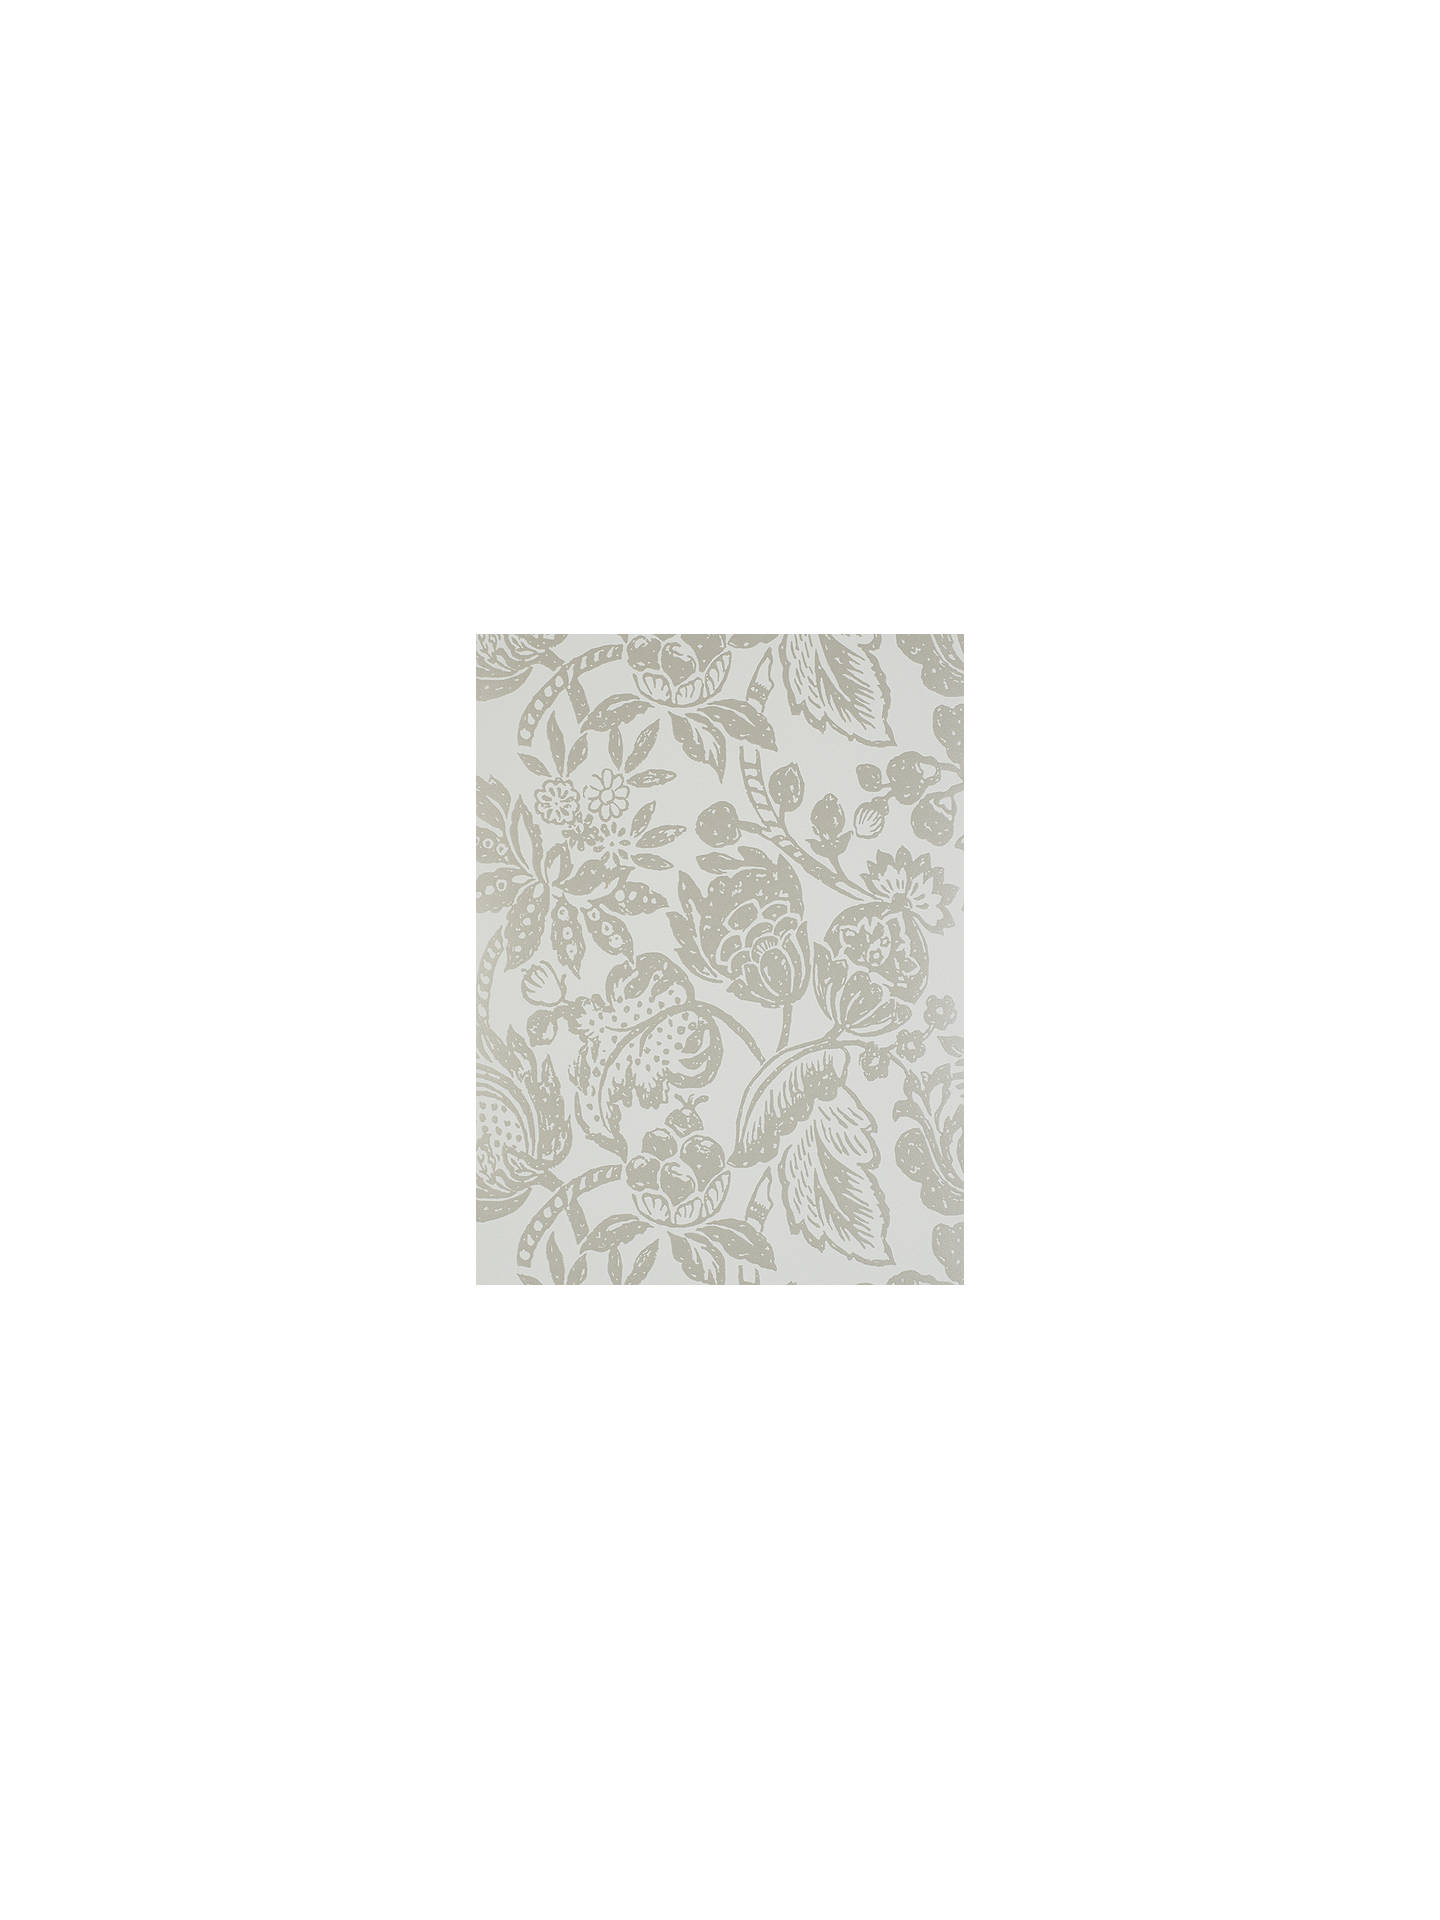 BuyPrestigious Textiles Saphir Wallpaper, Ivory, 1644/007 Online at johnlewis.com